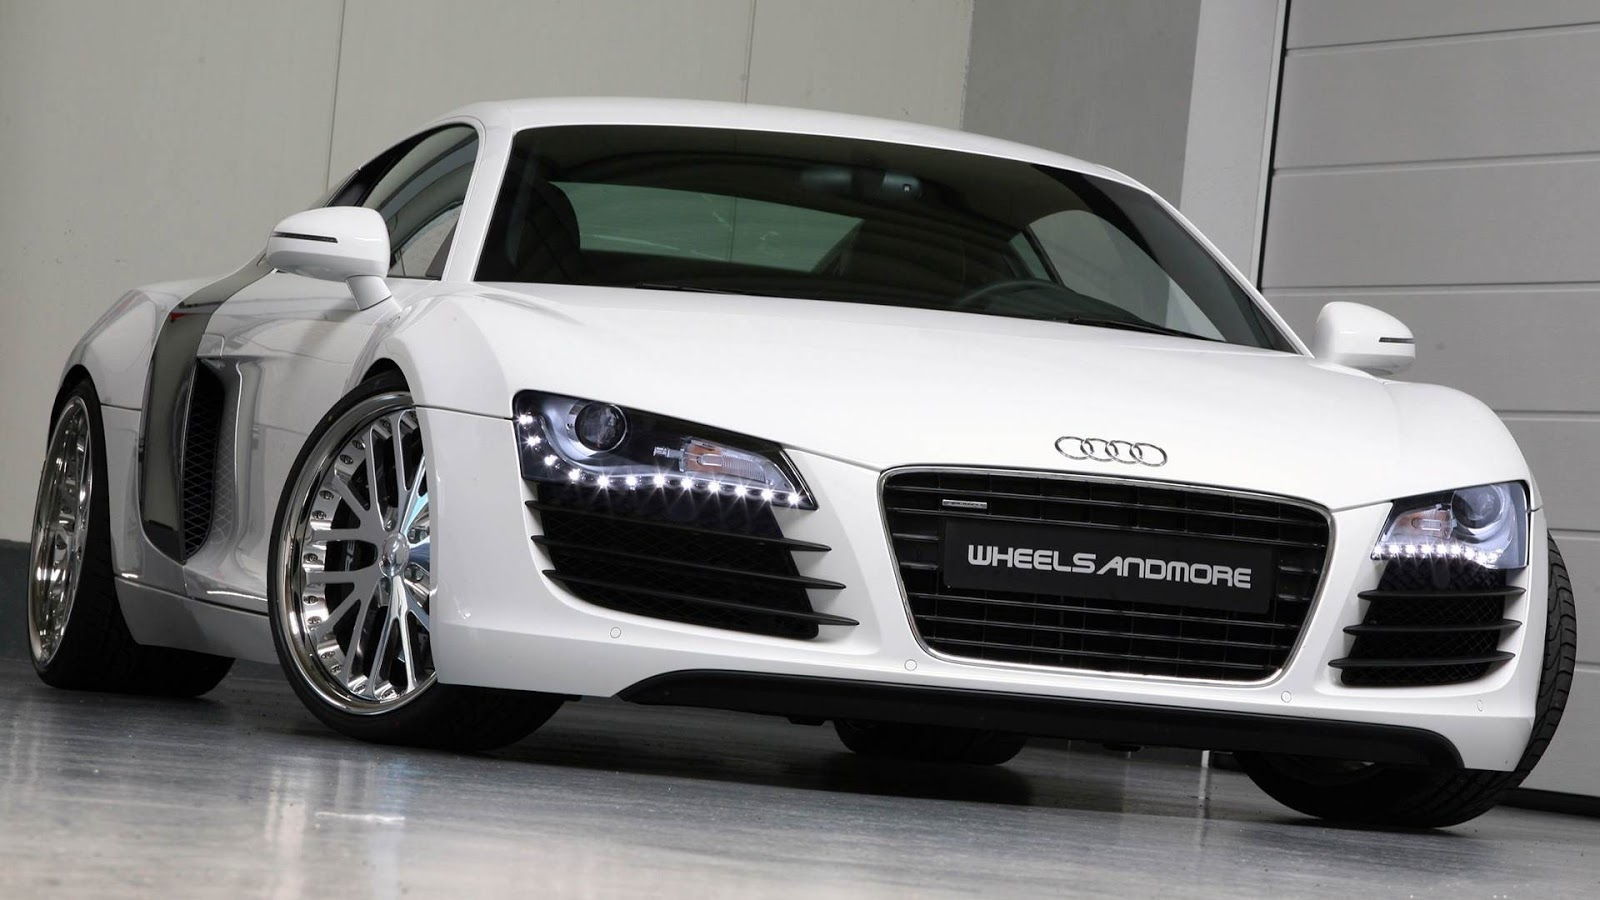 Marvelous Audi Is A Luxury Car Producer Recognized In 1910, With Its Headquarters In  Ingolstadt, Germany. The Company Obtains Its Name From The Last Name Of Its  ...